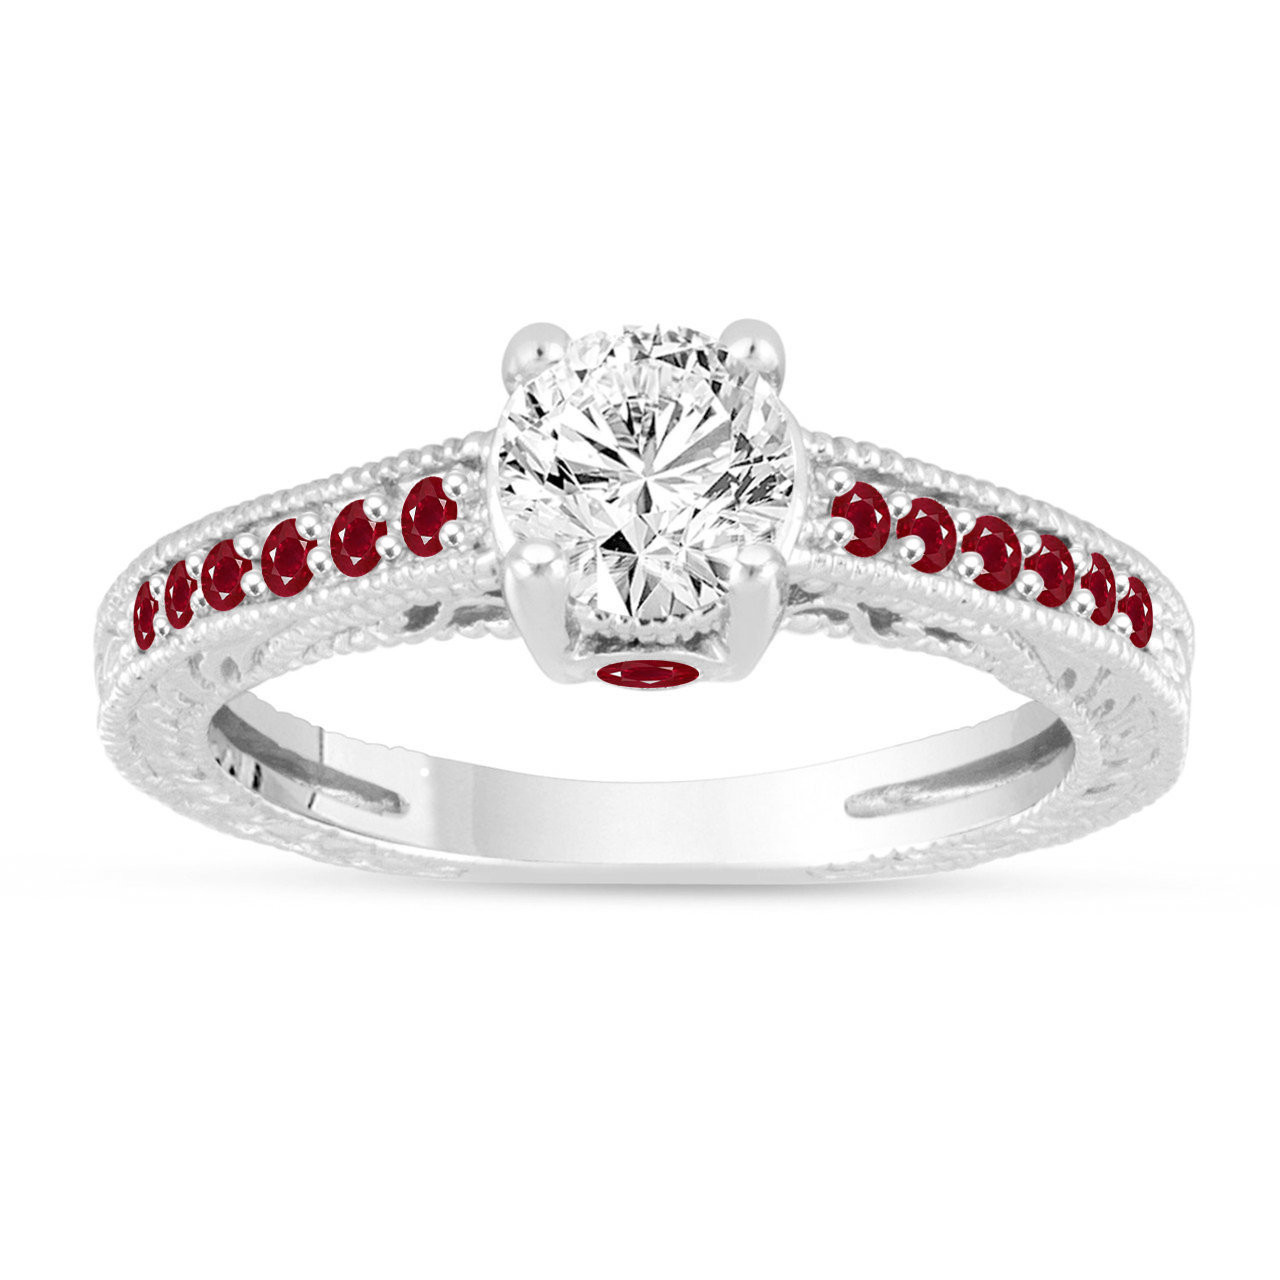 Ruby Wedding Rings.Diamond Rubies Engagement Ring Vintage Ruby Wedding Ring Gia Certified 0 80 Carat 14k White Gold Unique Antique Style Handmade